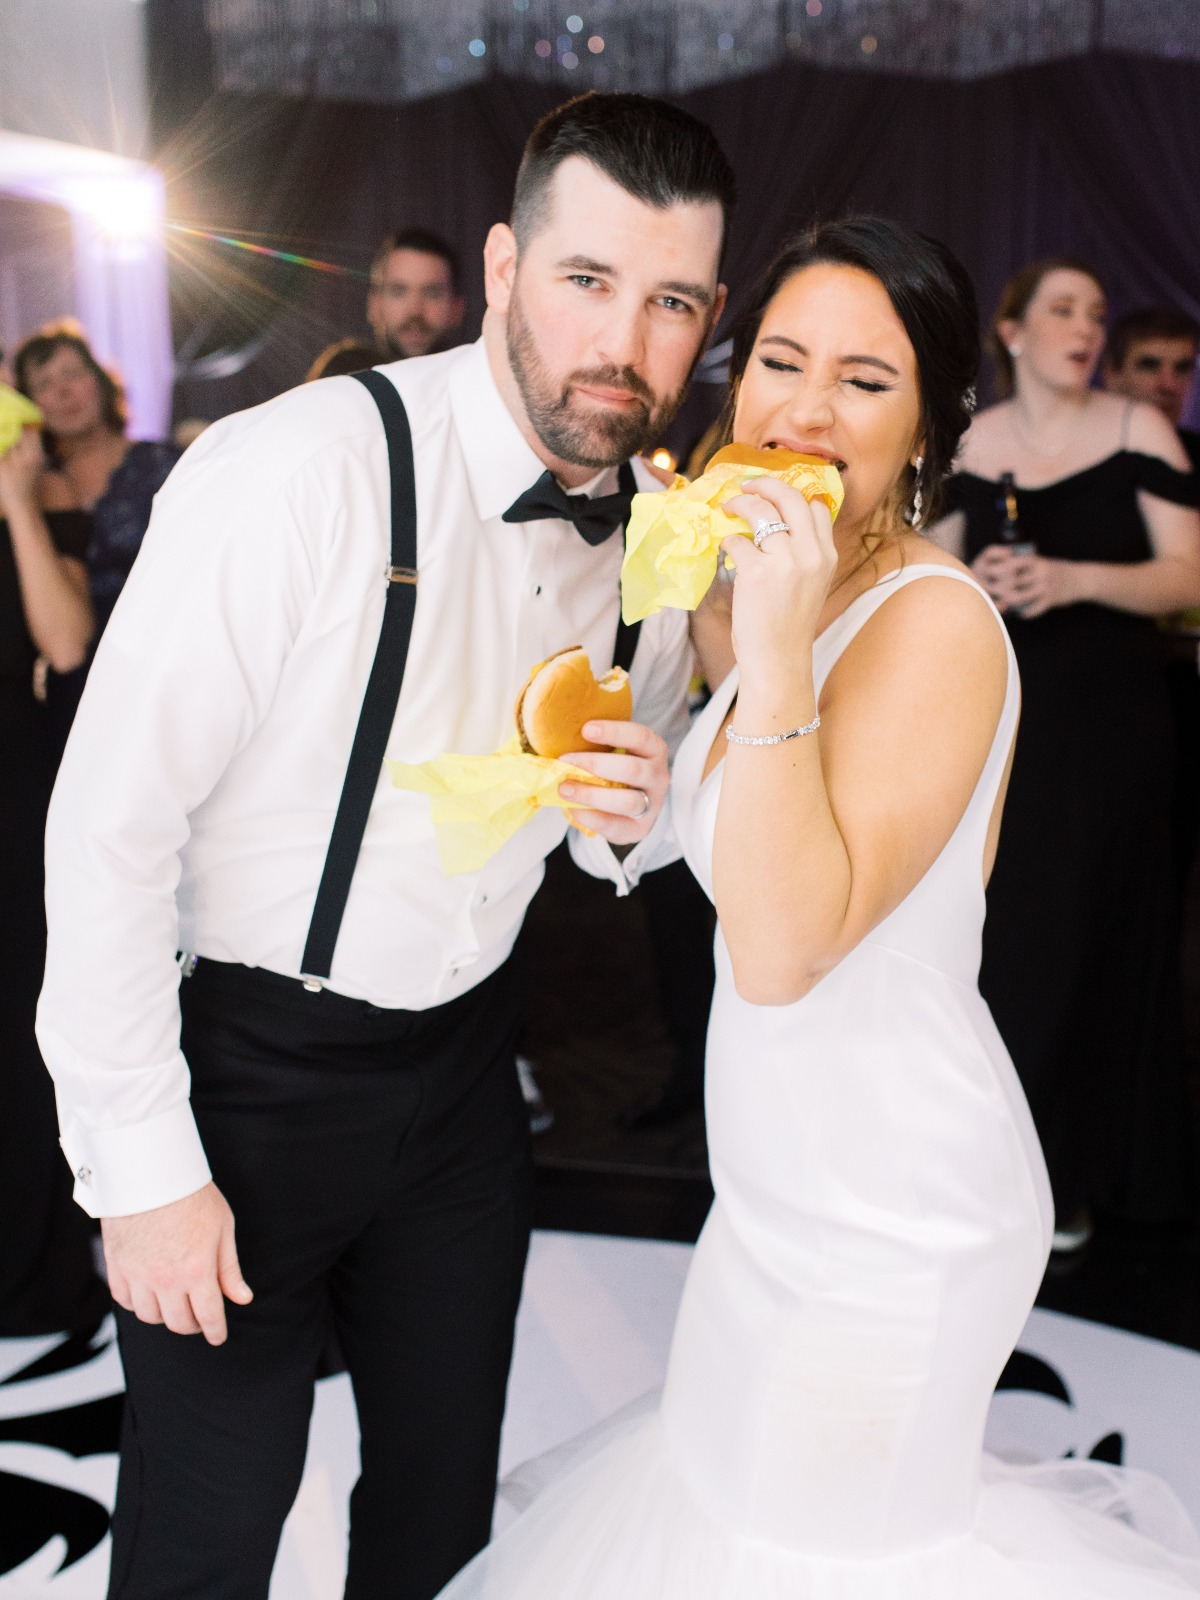 Bride and Groom Eating Cheeseburgers